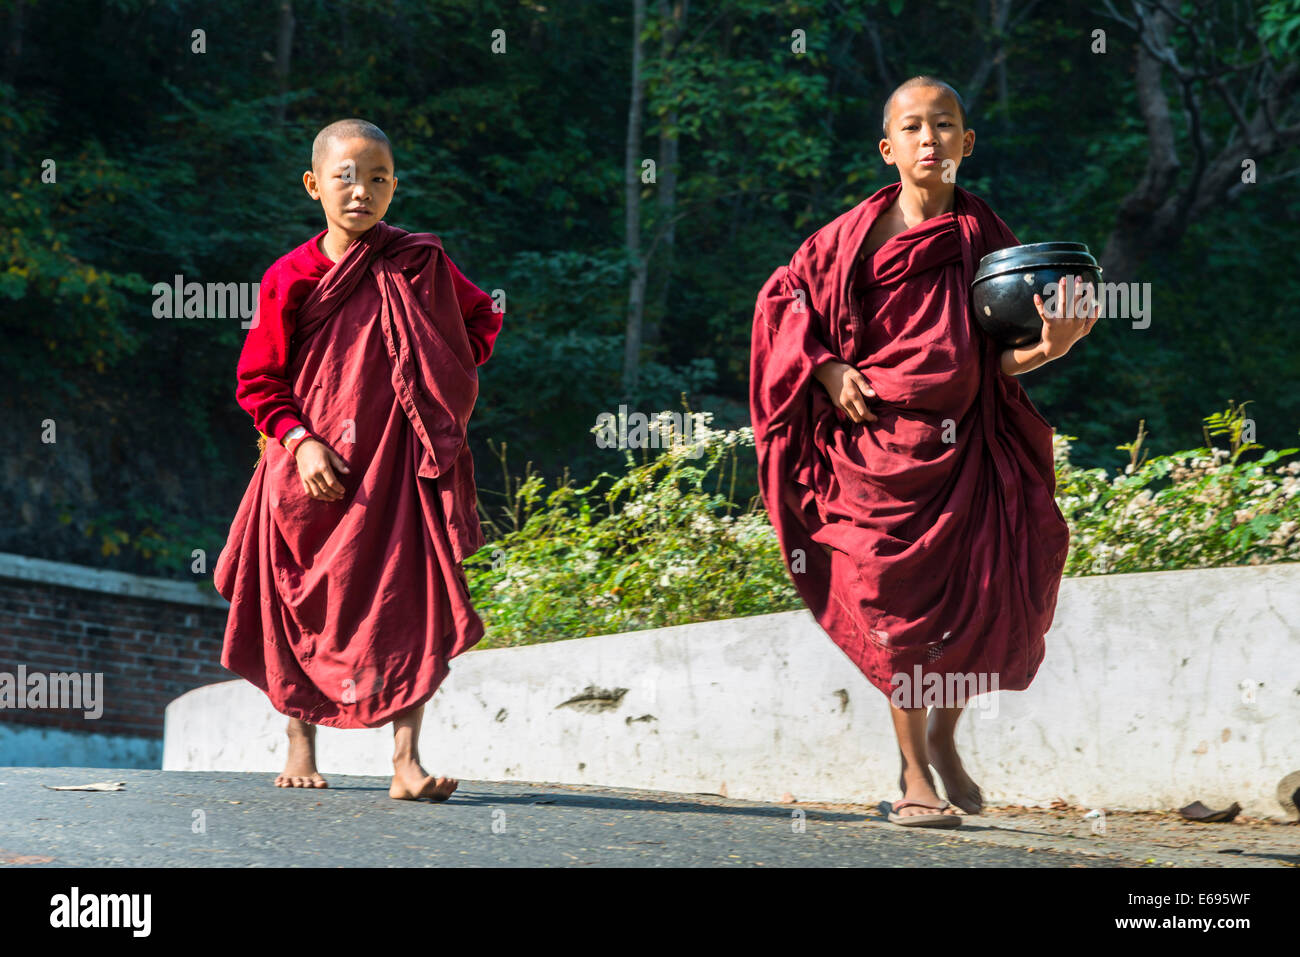 Young Buddhist novices with begging bowls collecting alms in the morning, Sagaing, Sagaing Region, Myanmar - Stock Image